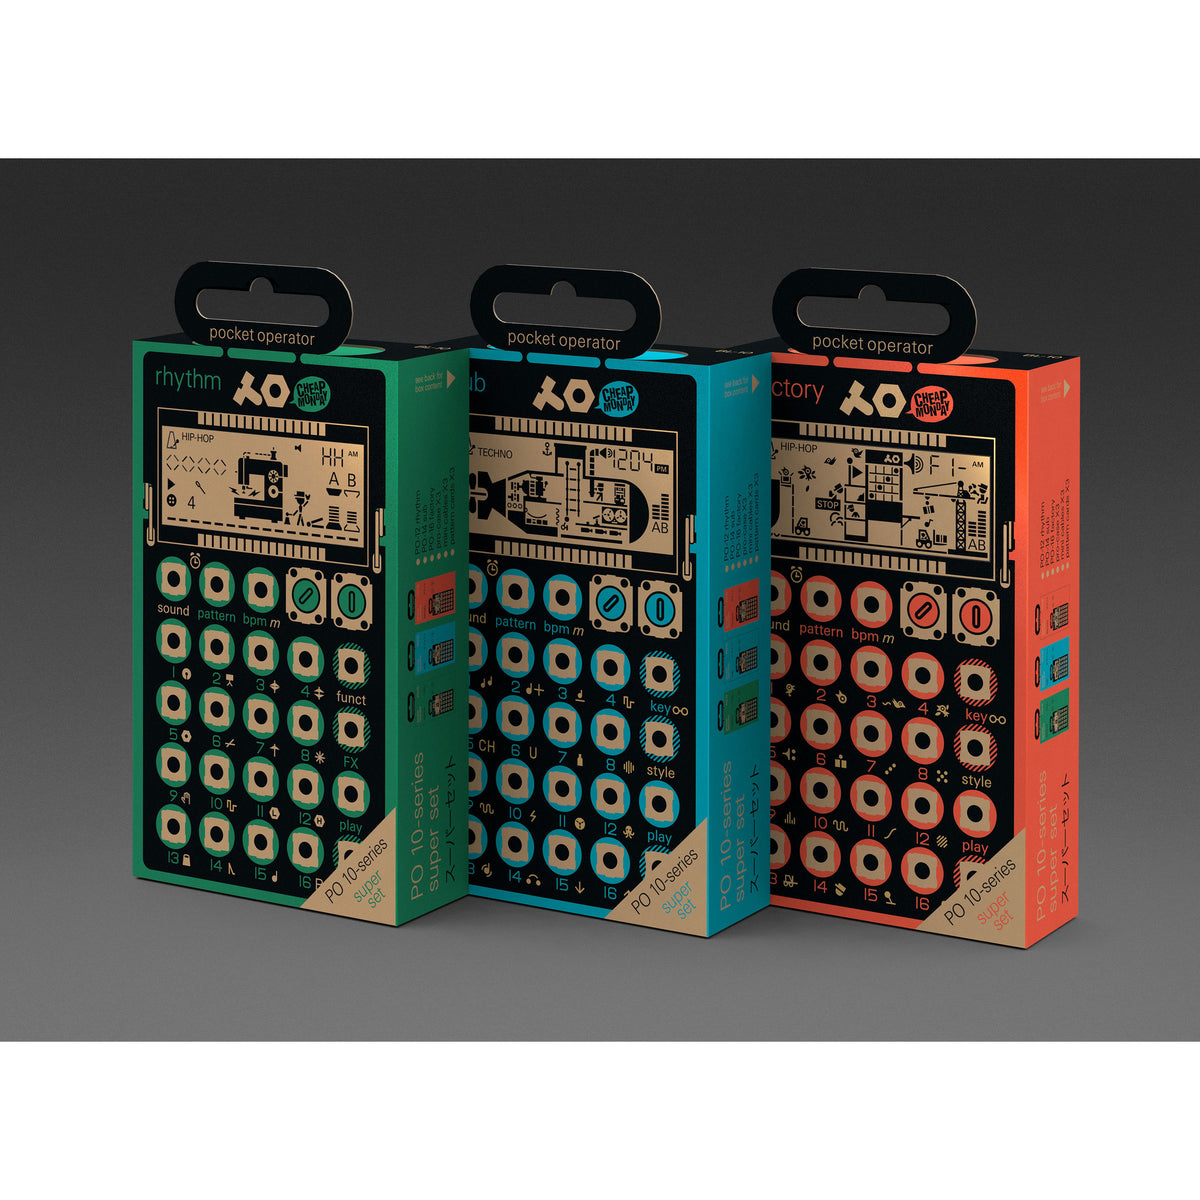 Teenage Engineering: PO 10-Series Super Set (Pocket Operator)